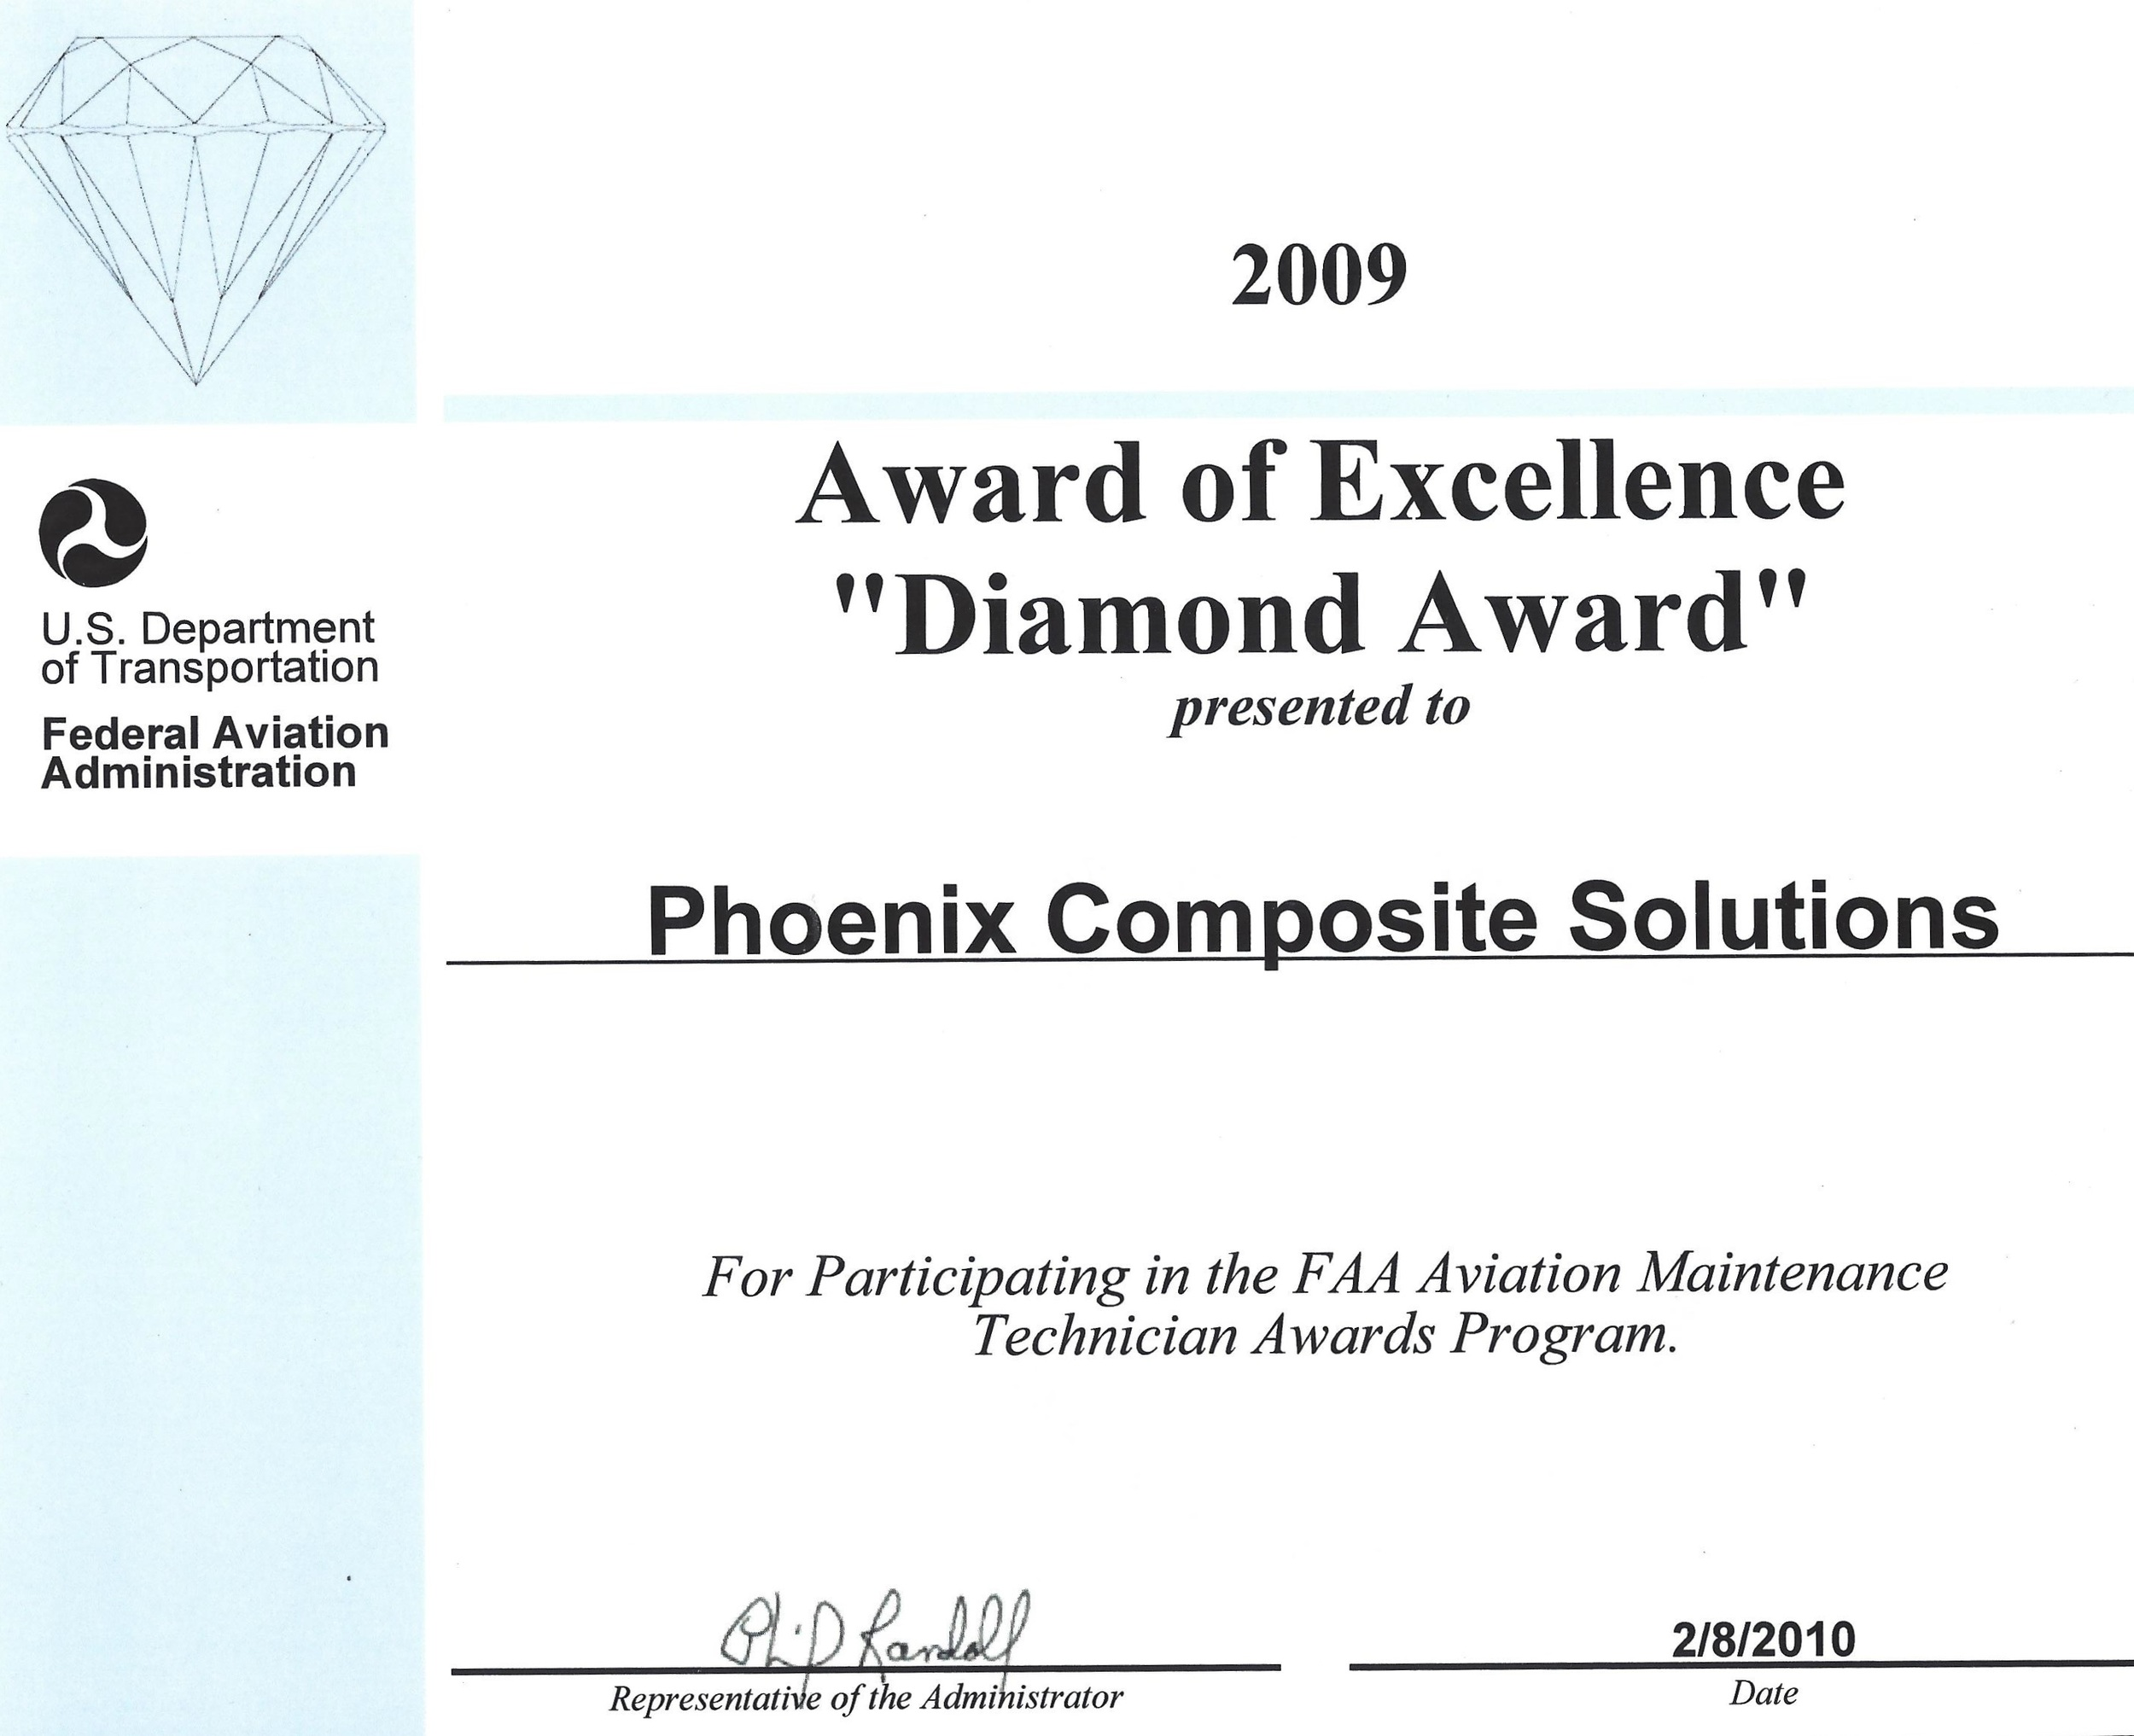 Diamond Award - An Award of excellence received for participating in the FAA Aviation Maintenance Technician Awards Program